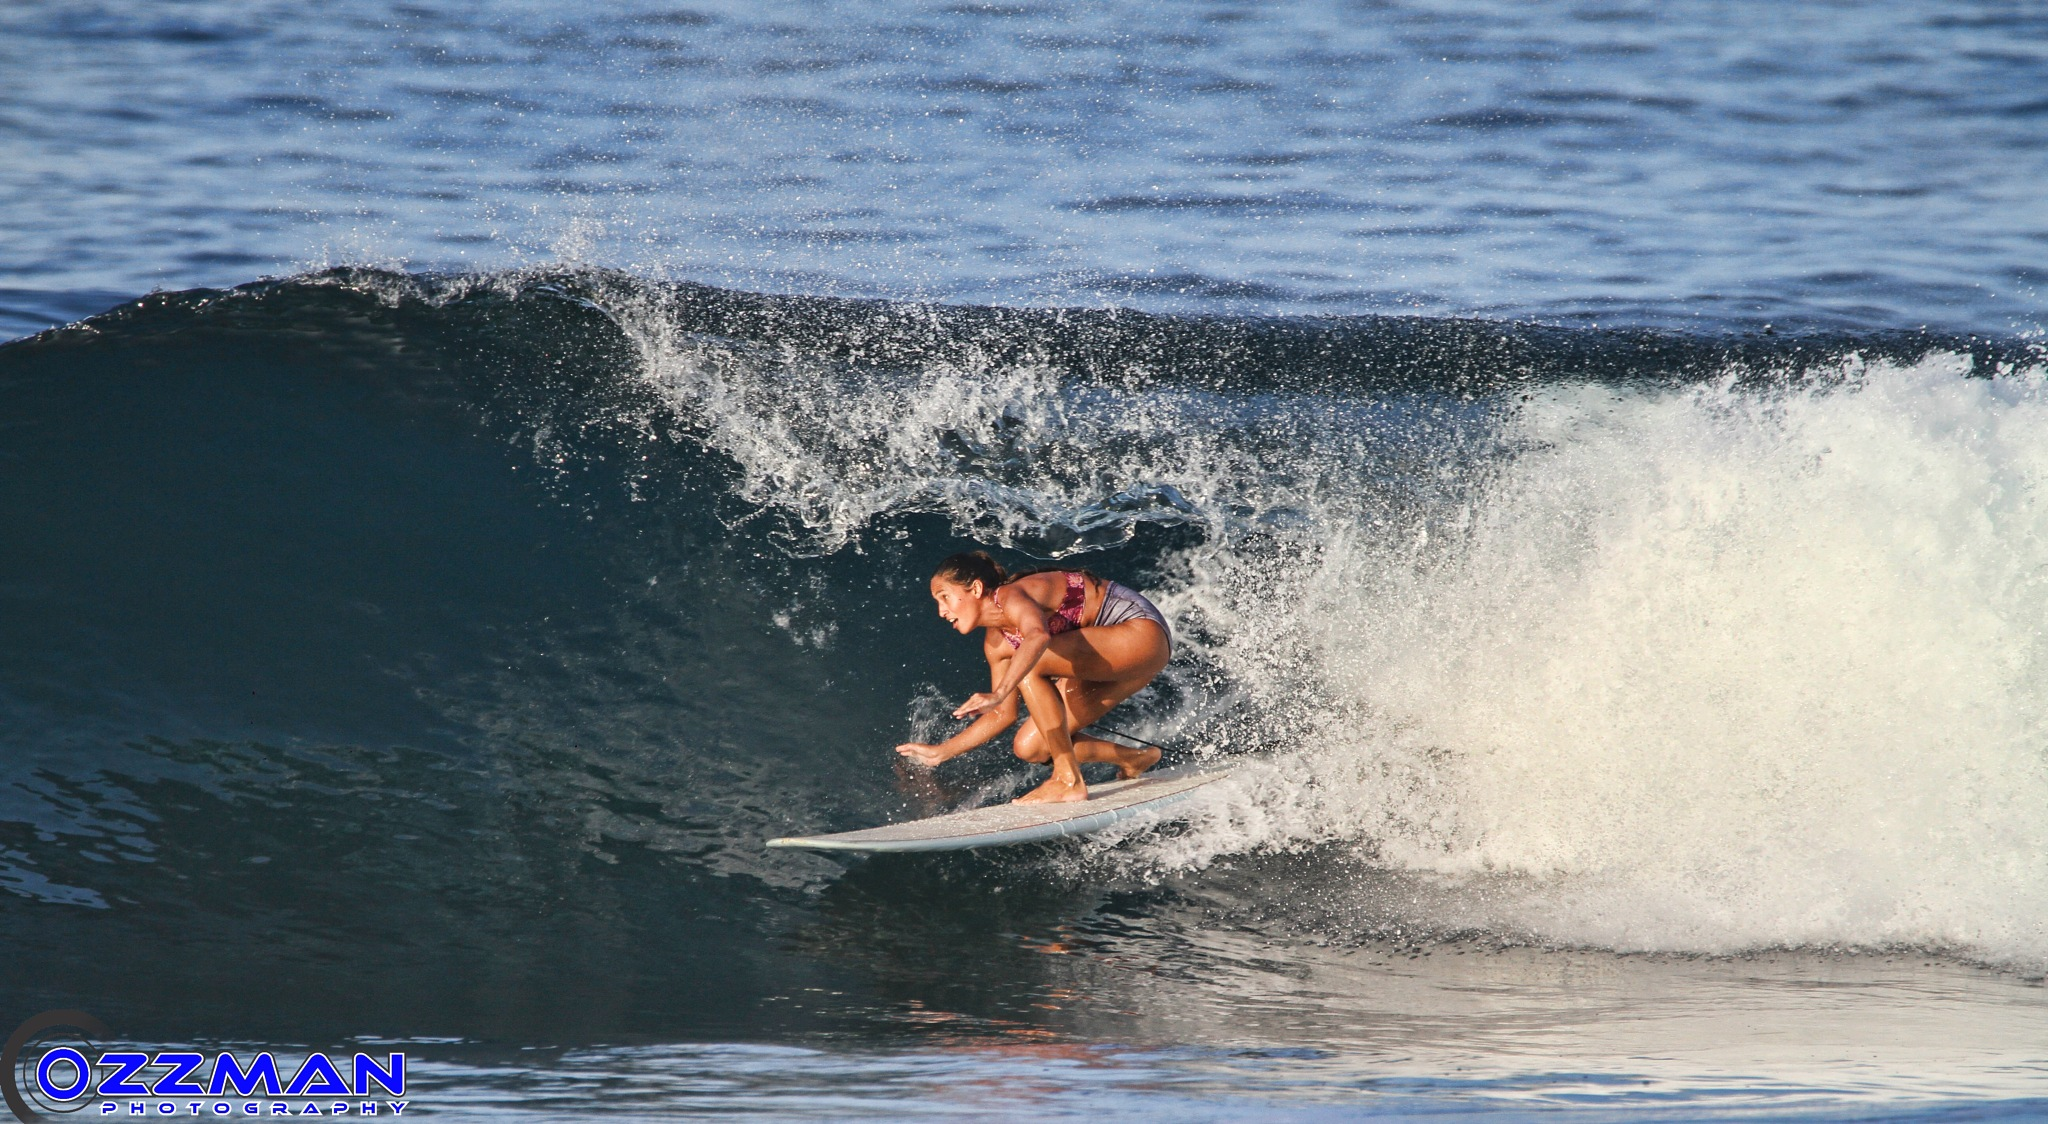 Surfer Girl #10 by Ozzy Osborne